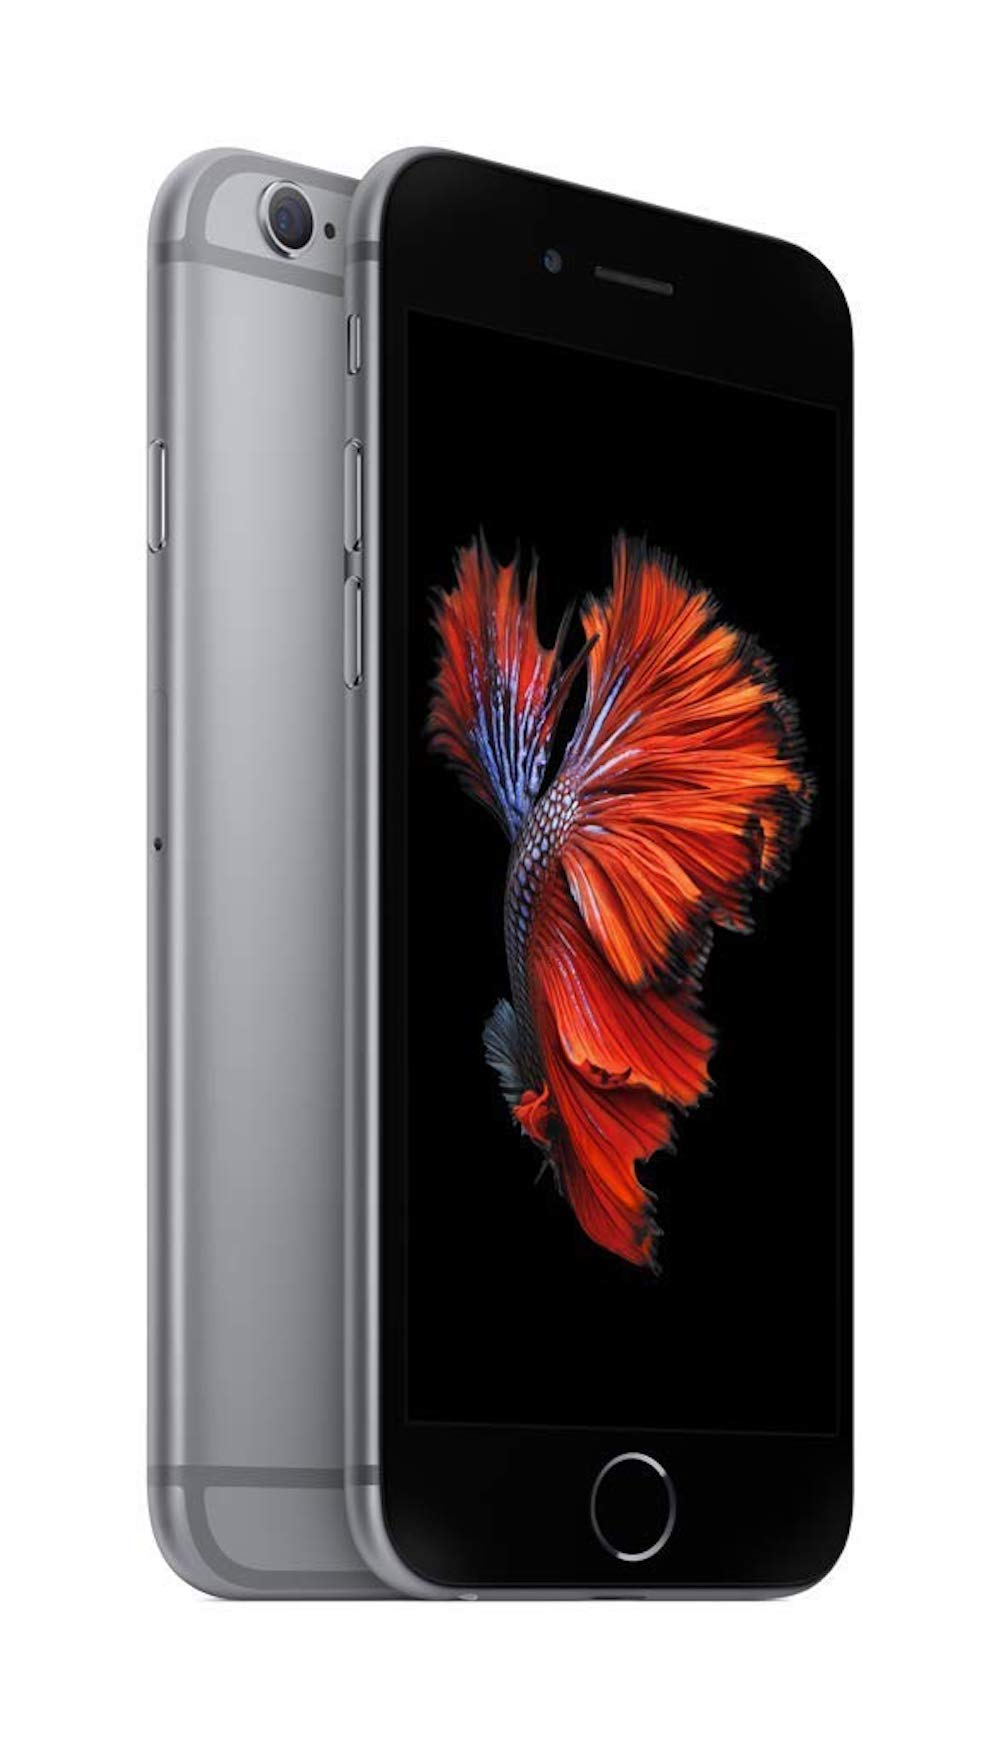 iPhone 6s 64GB Space Gray ATT Model MKQ92LL/A (B)